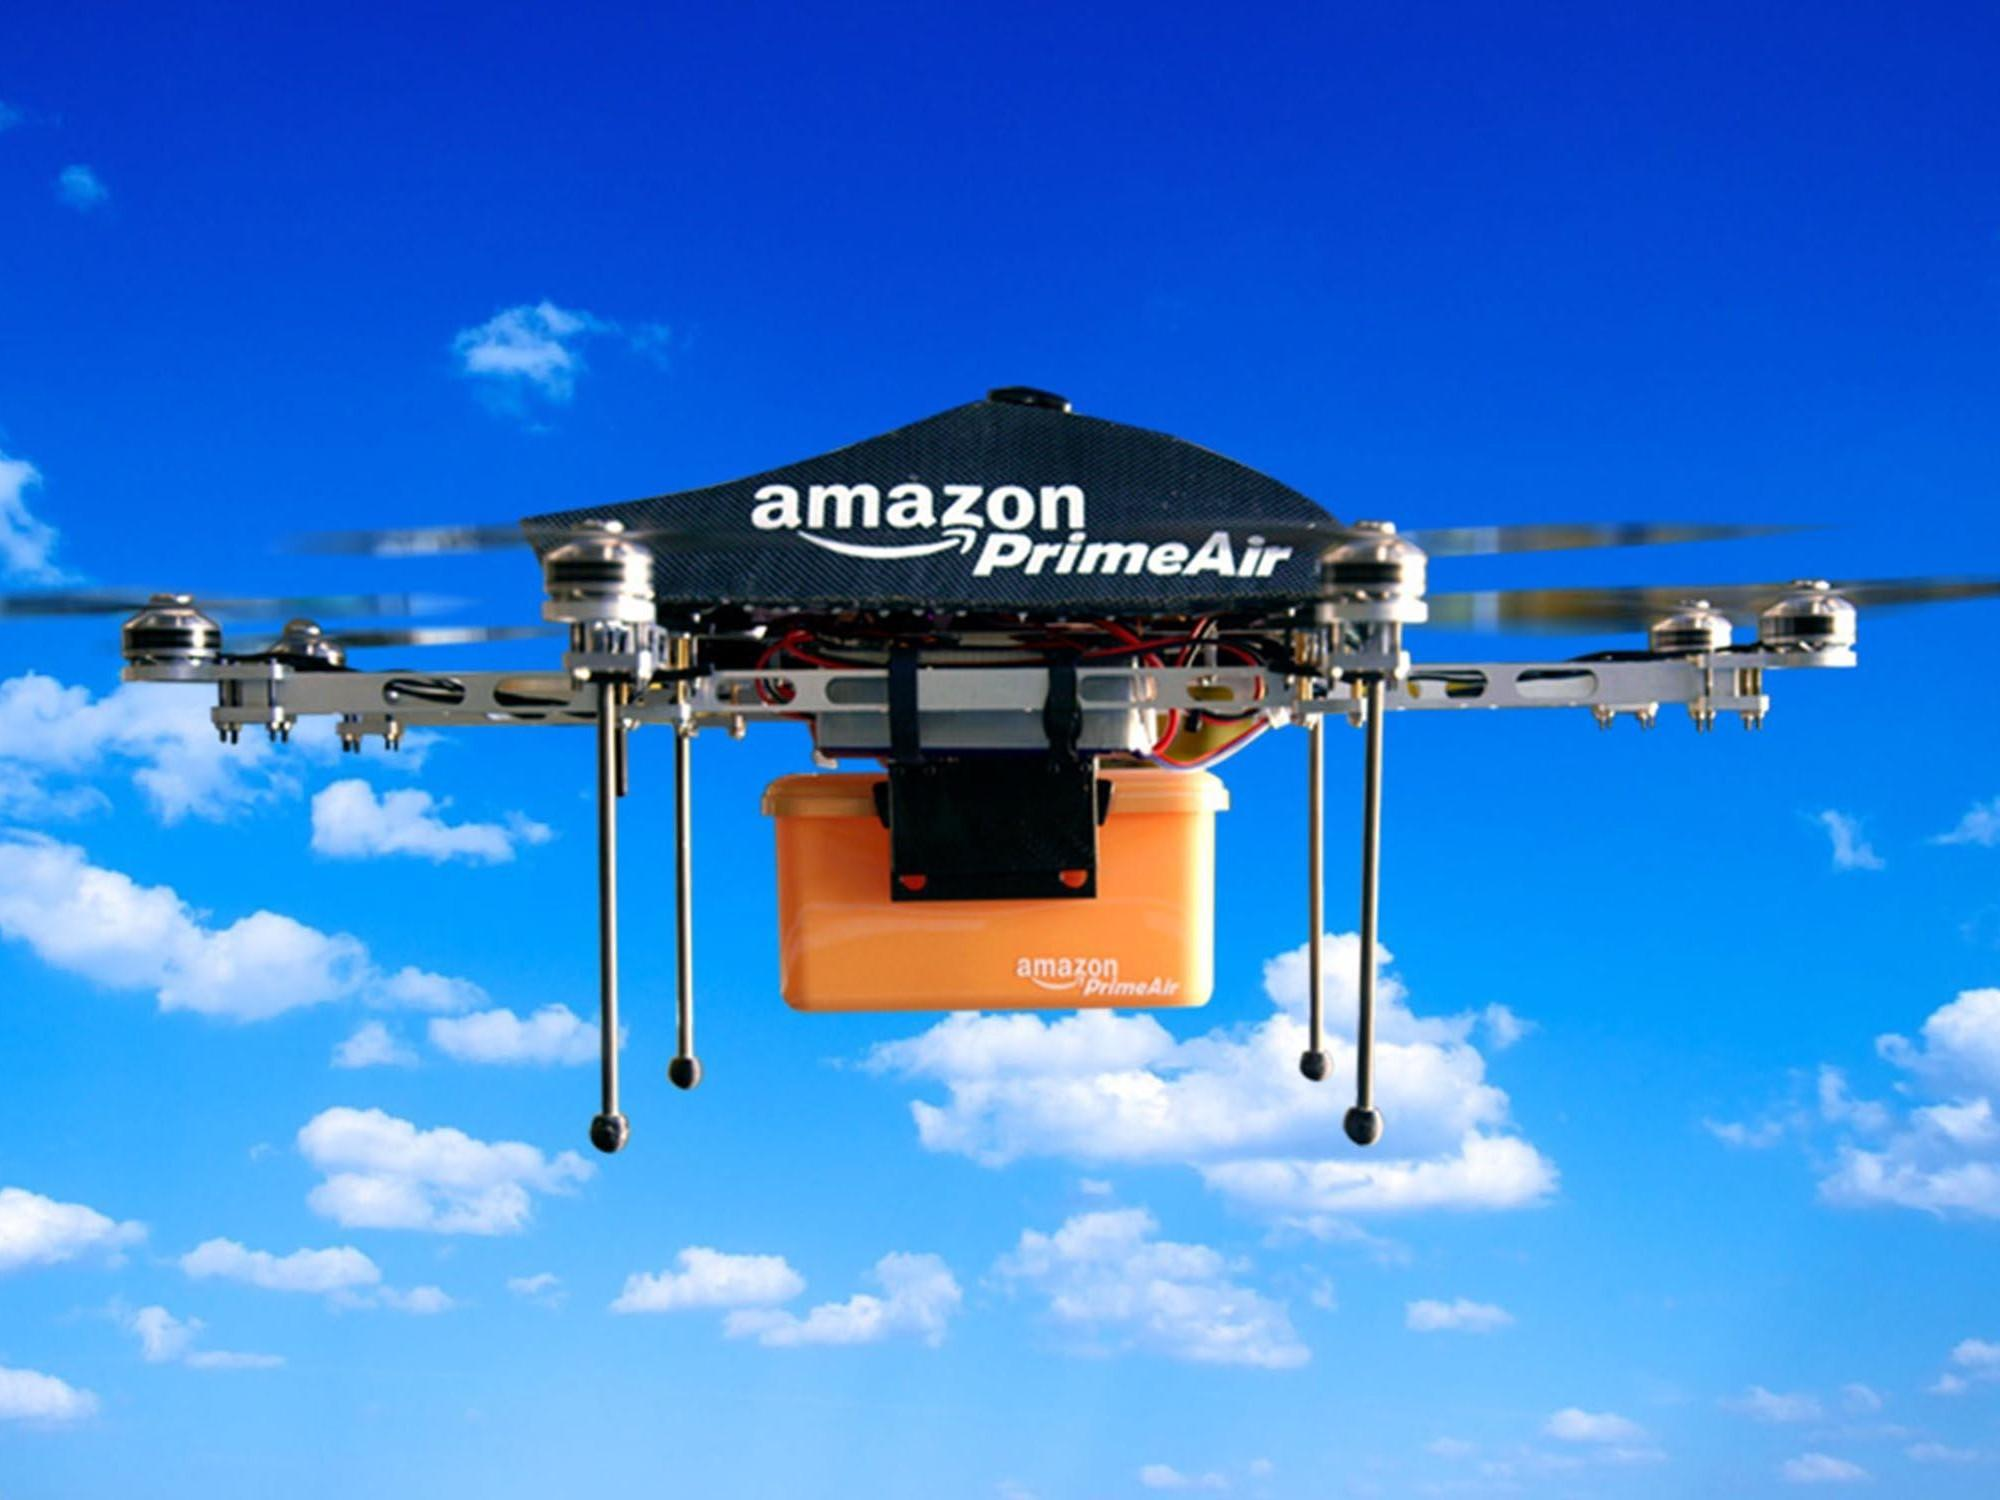 Amazon Prime Air | How Drones Will Affect the Logistics Industry in the Next 5 Years